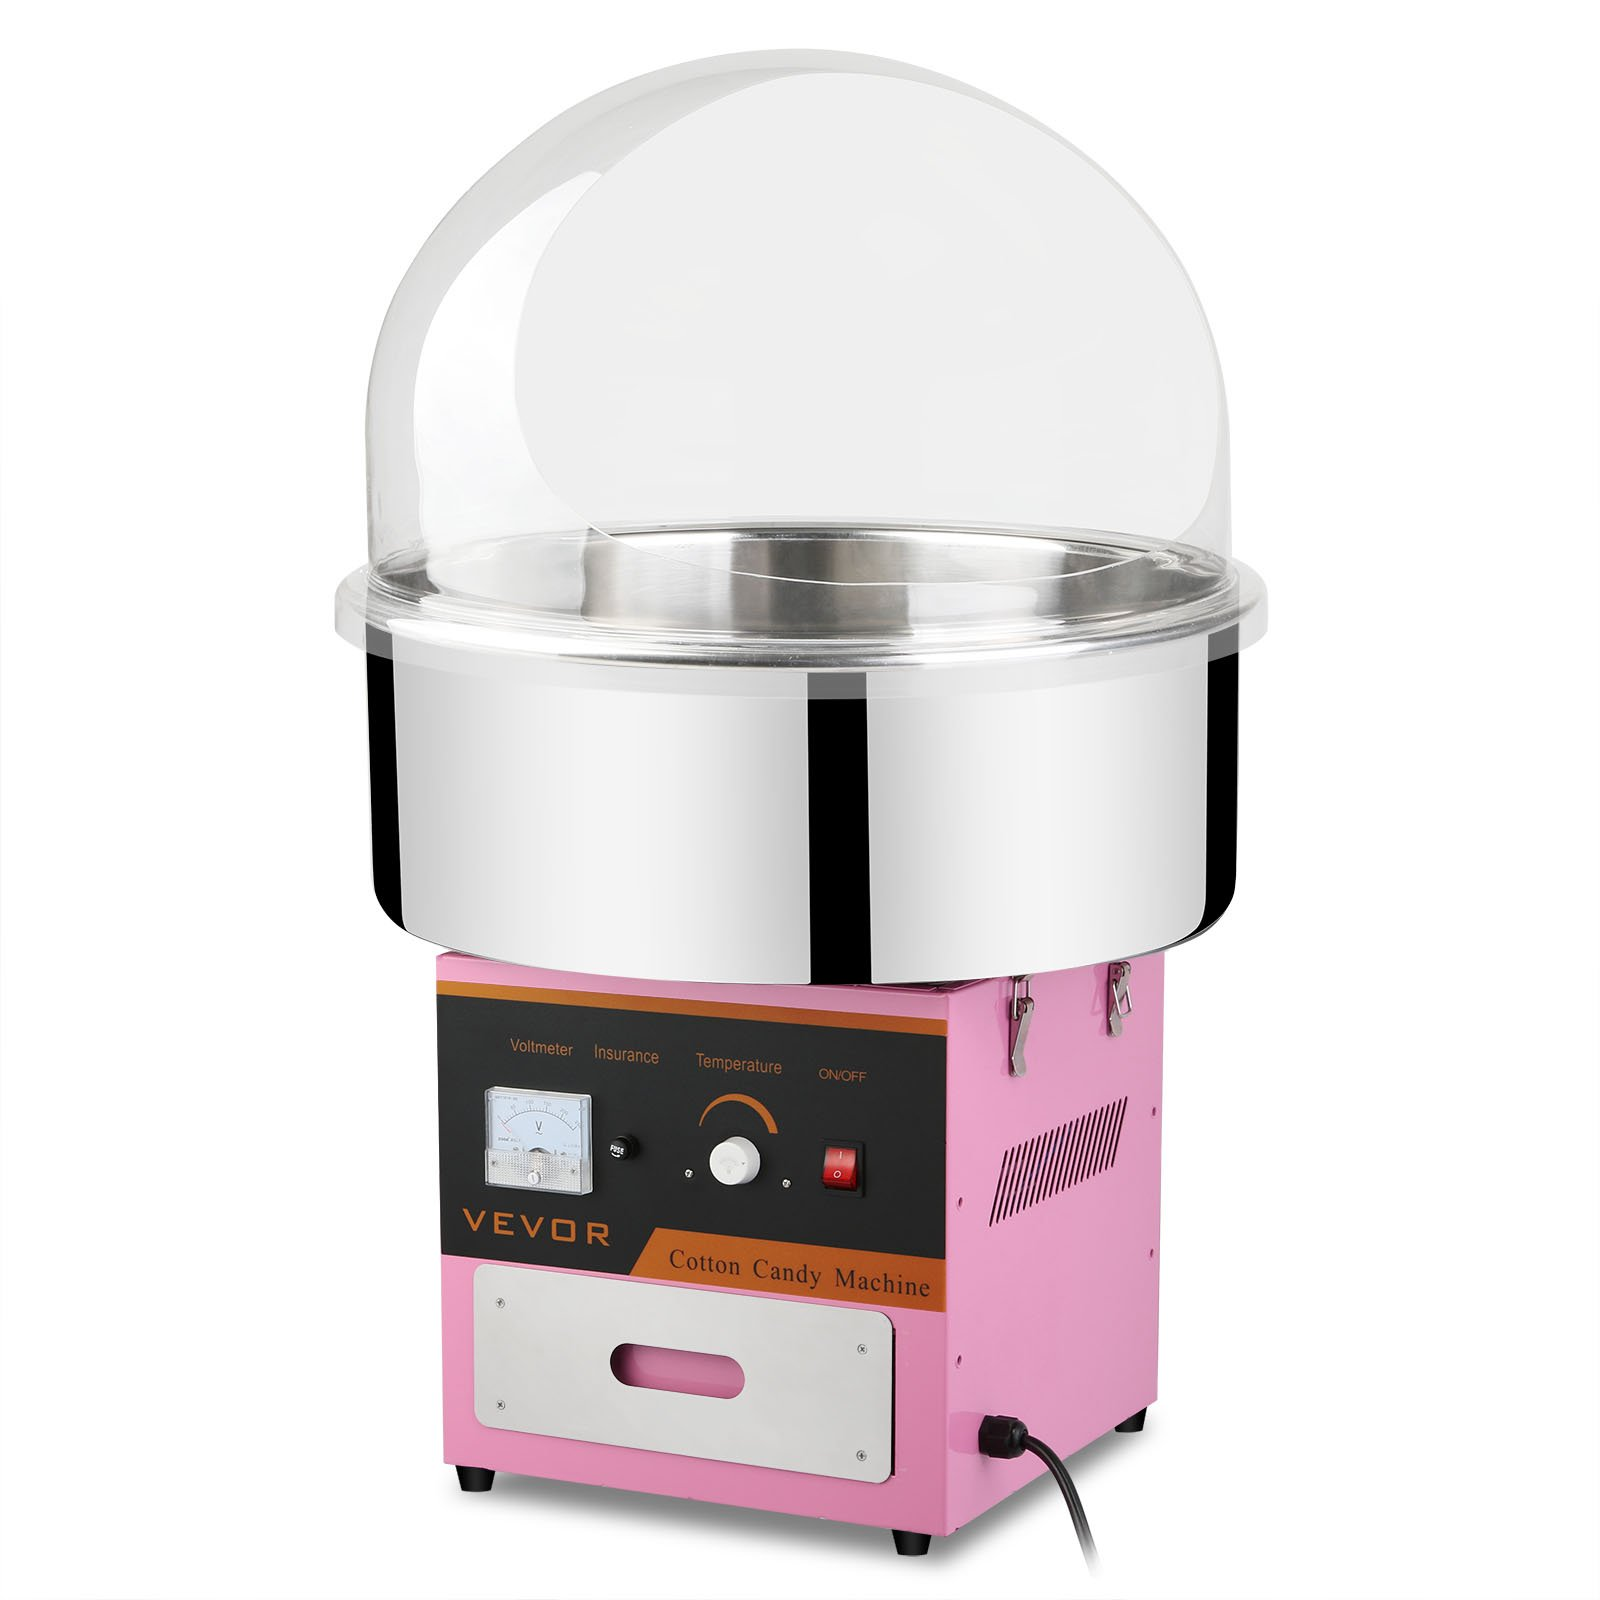 Mophorn Electric Cotton Candy Machine with Bubble Cover Cotton Candy Maker with Cover for Kids Cotton Commercial Candy Machine Kit 110V Perfect for Various Parties